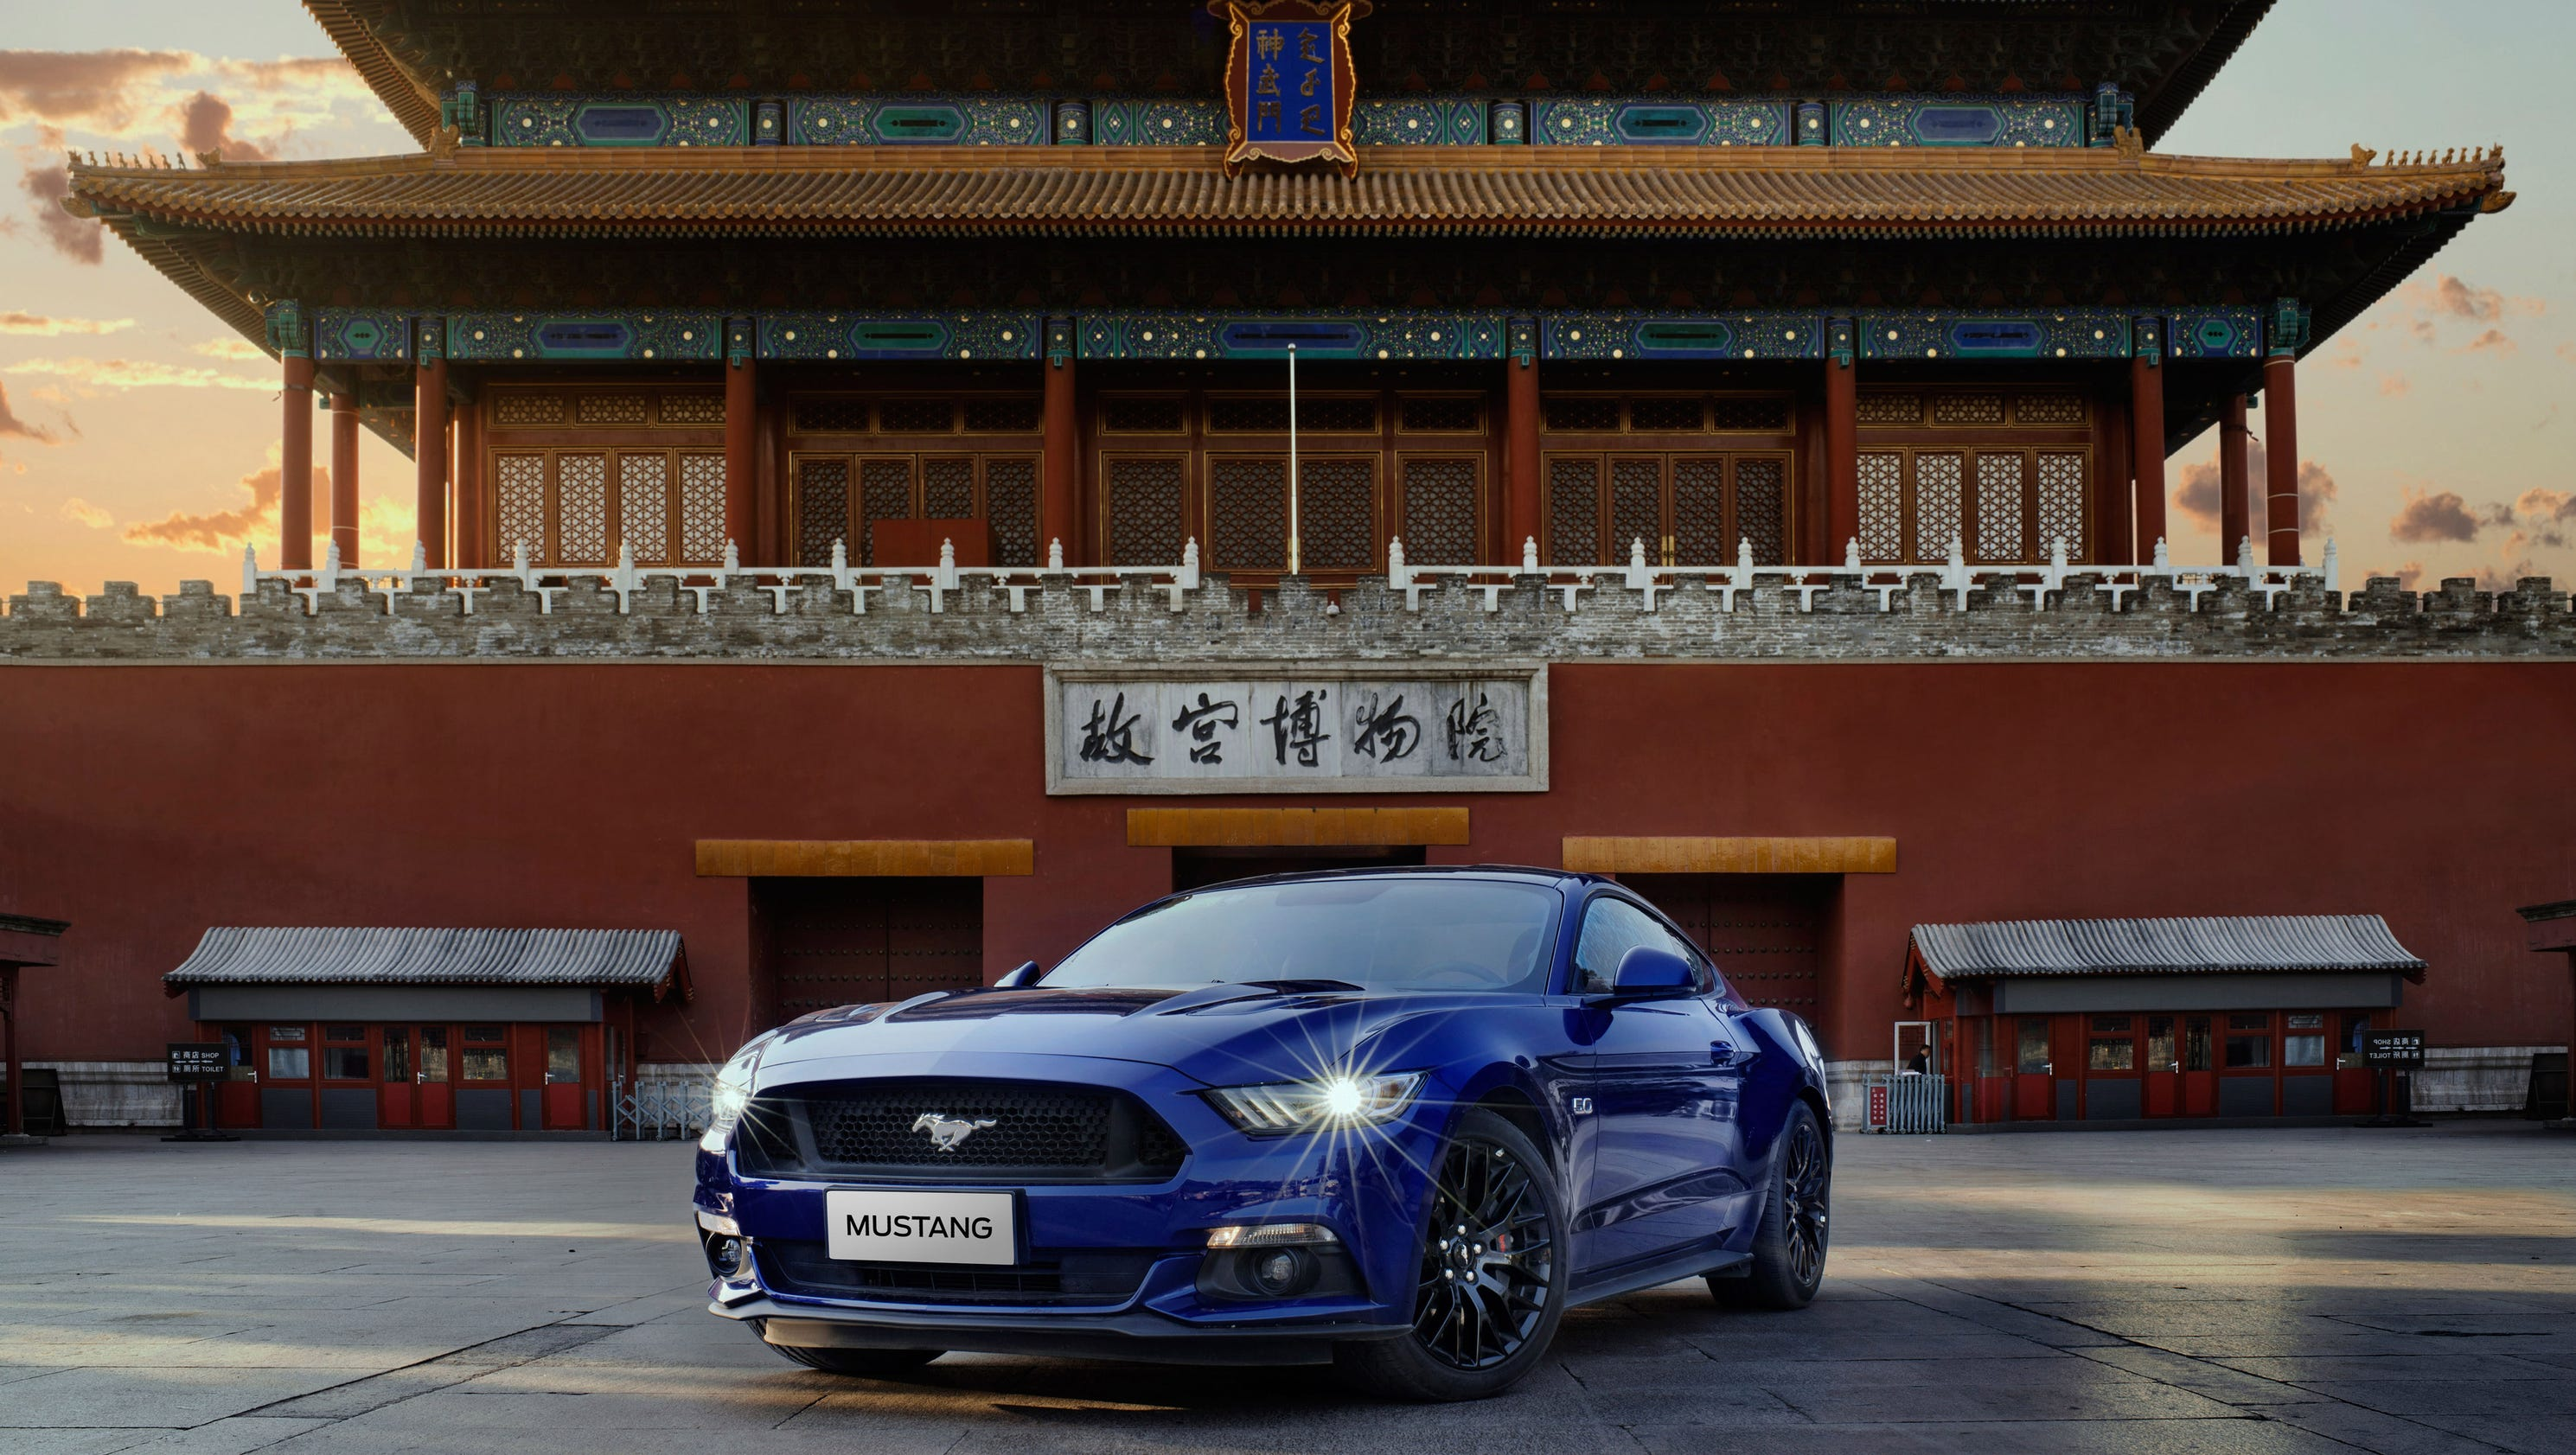 Mustang is a hit with Chinese buyers, Ford says